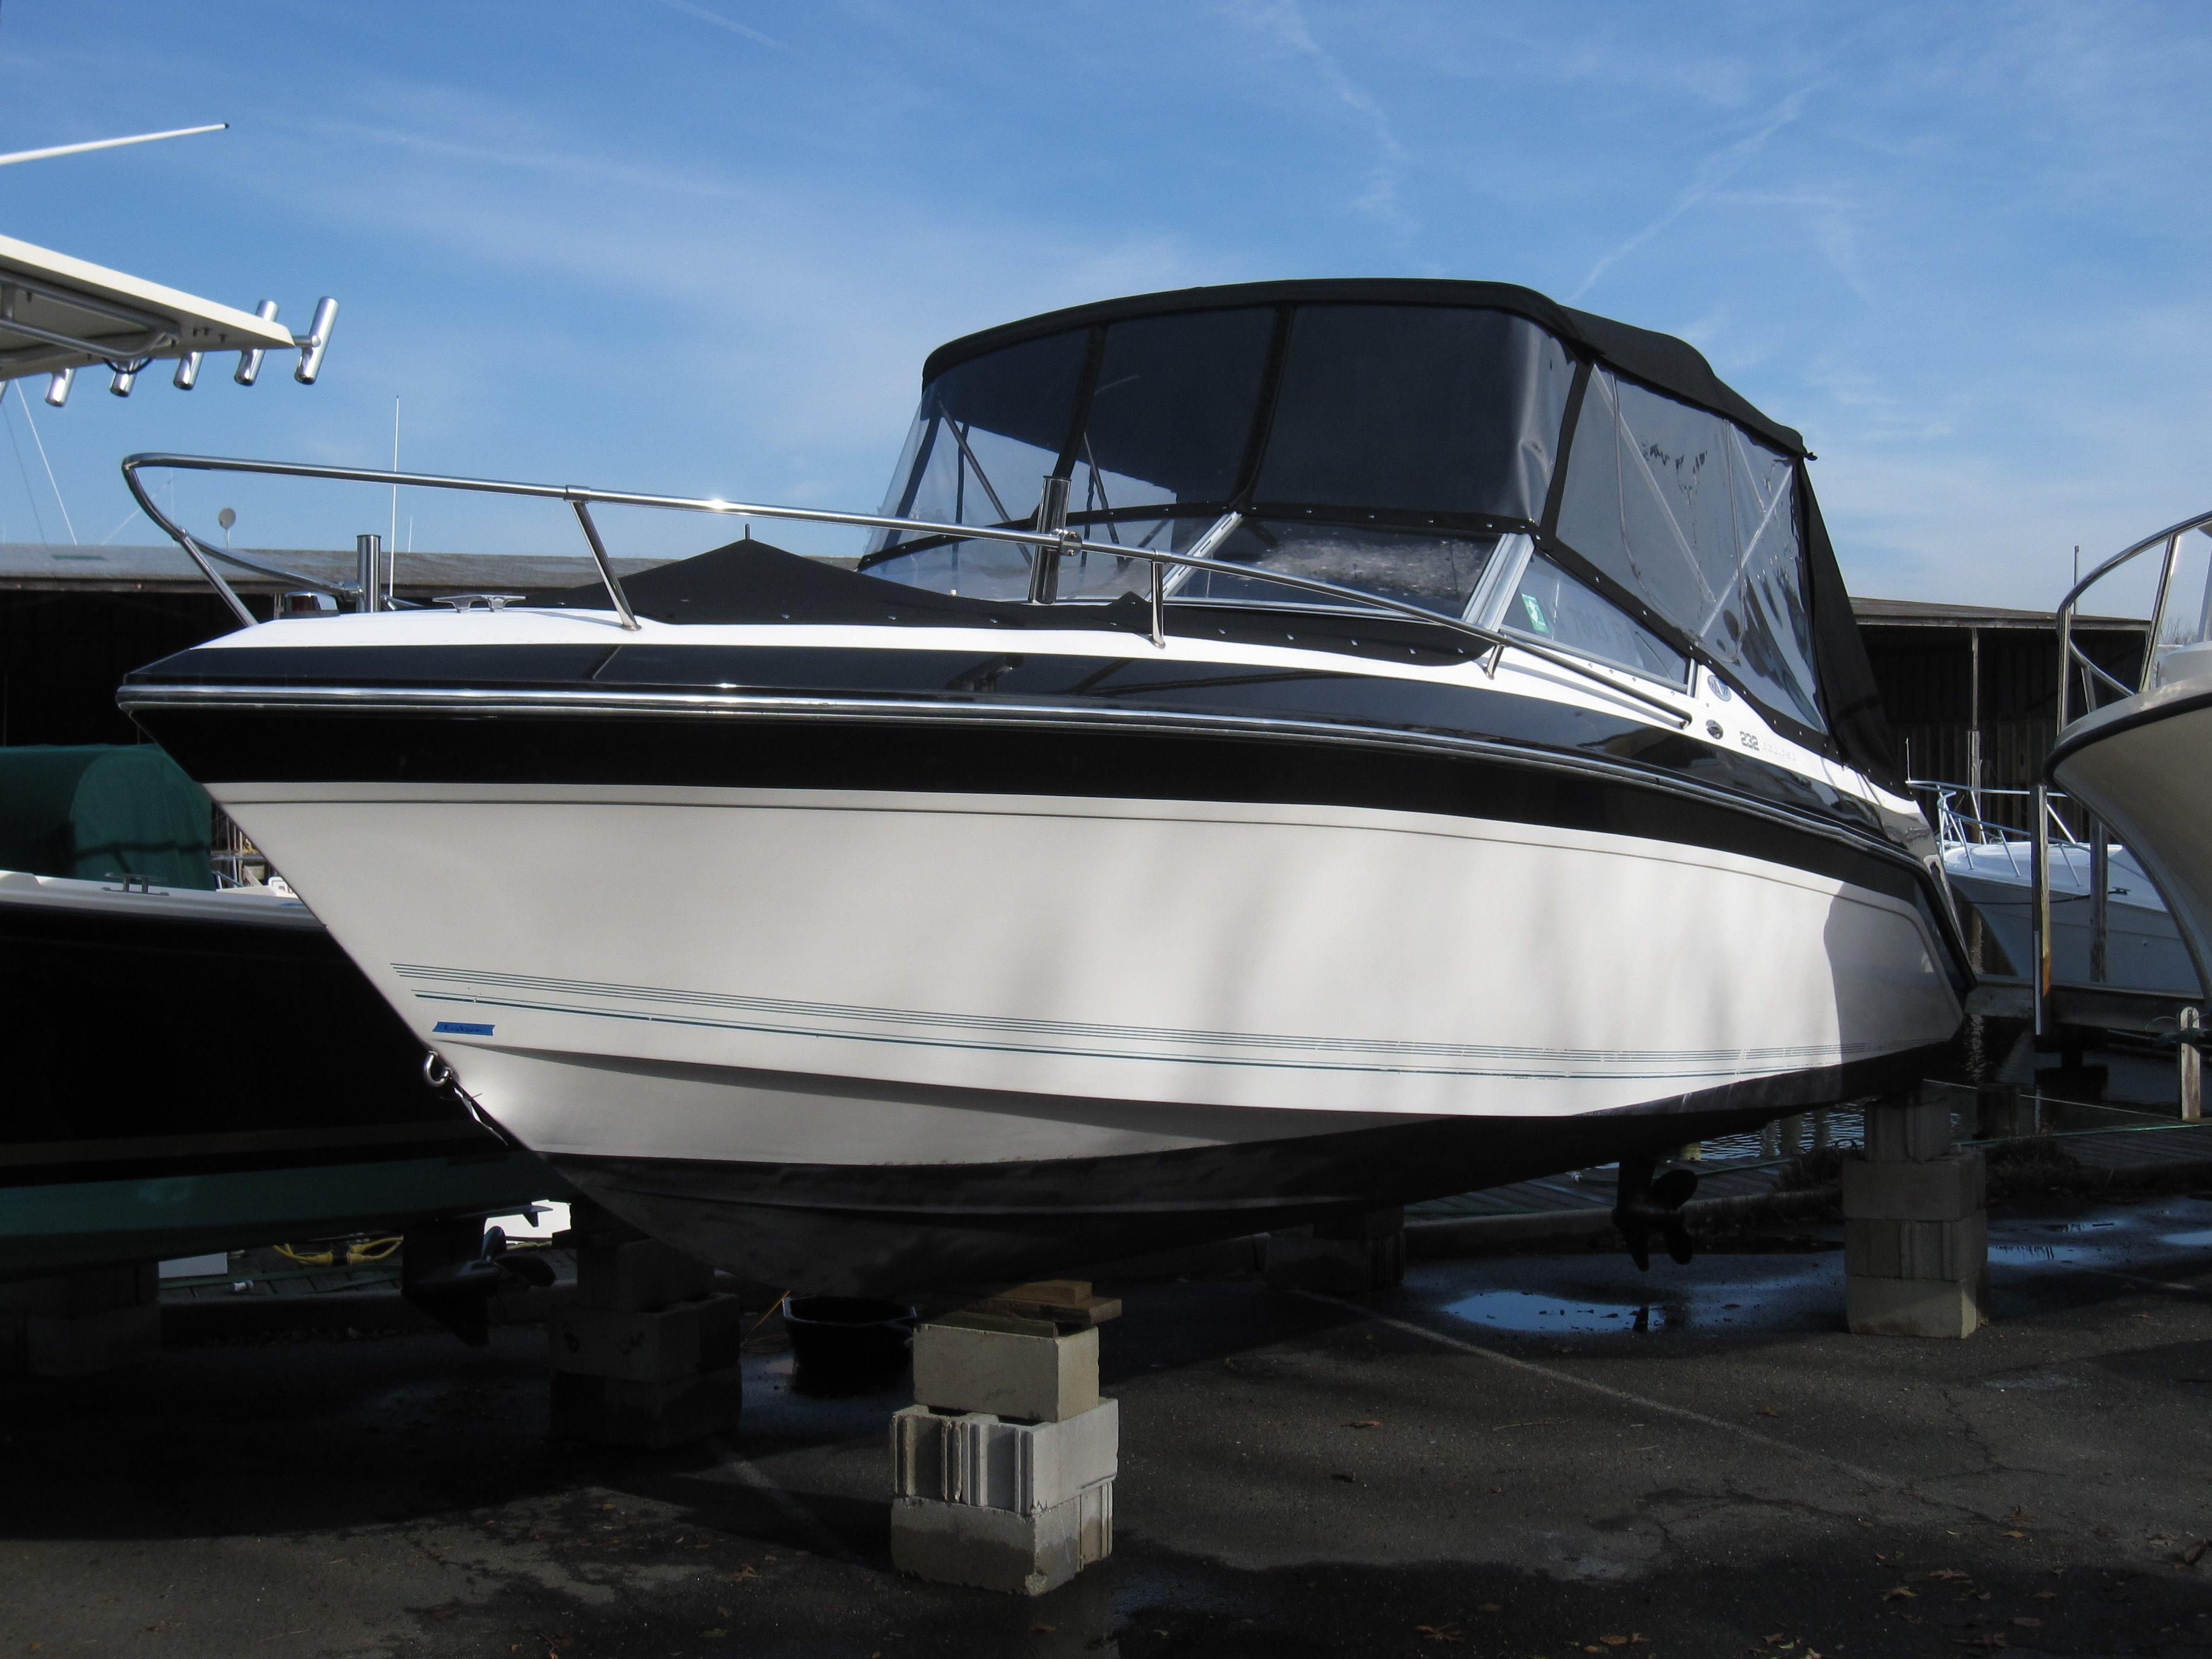 1994 Wellcraft Eclipse 232 Power Boat For Sale Www